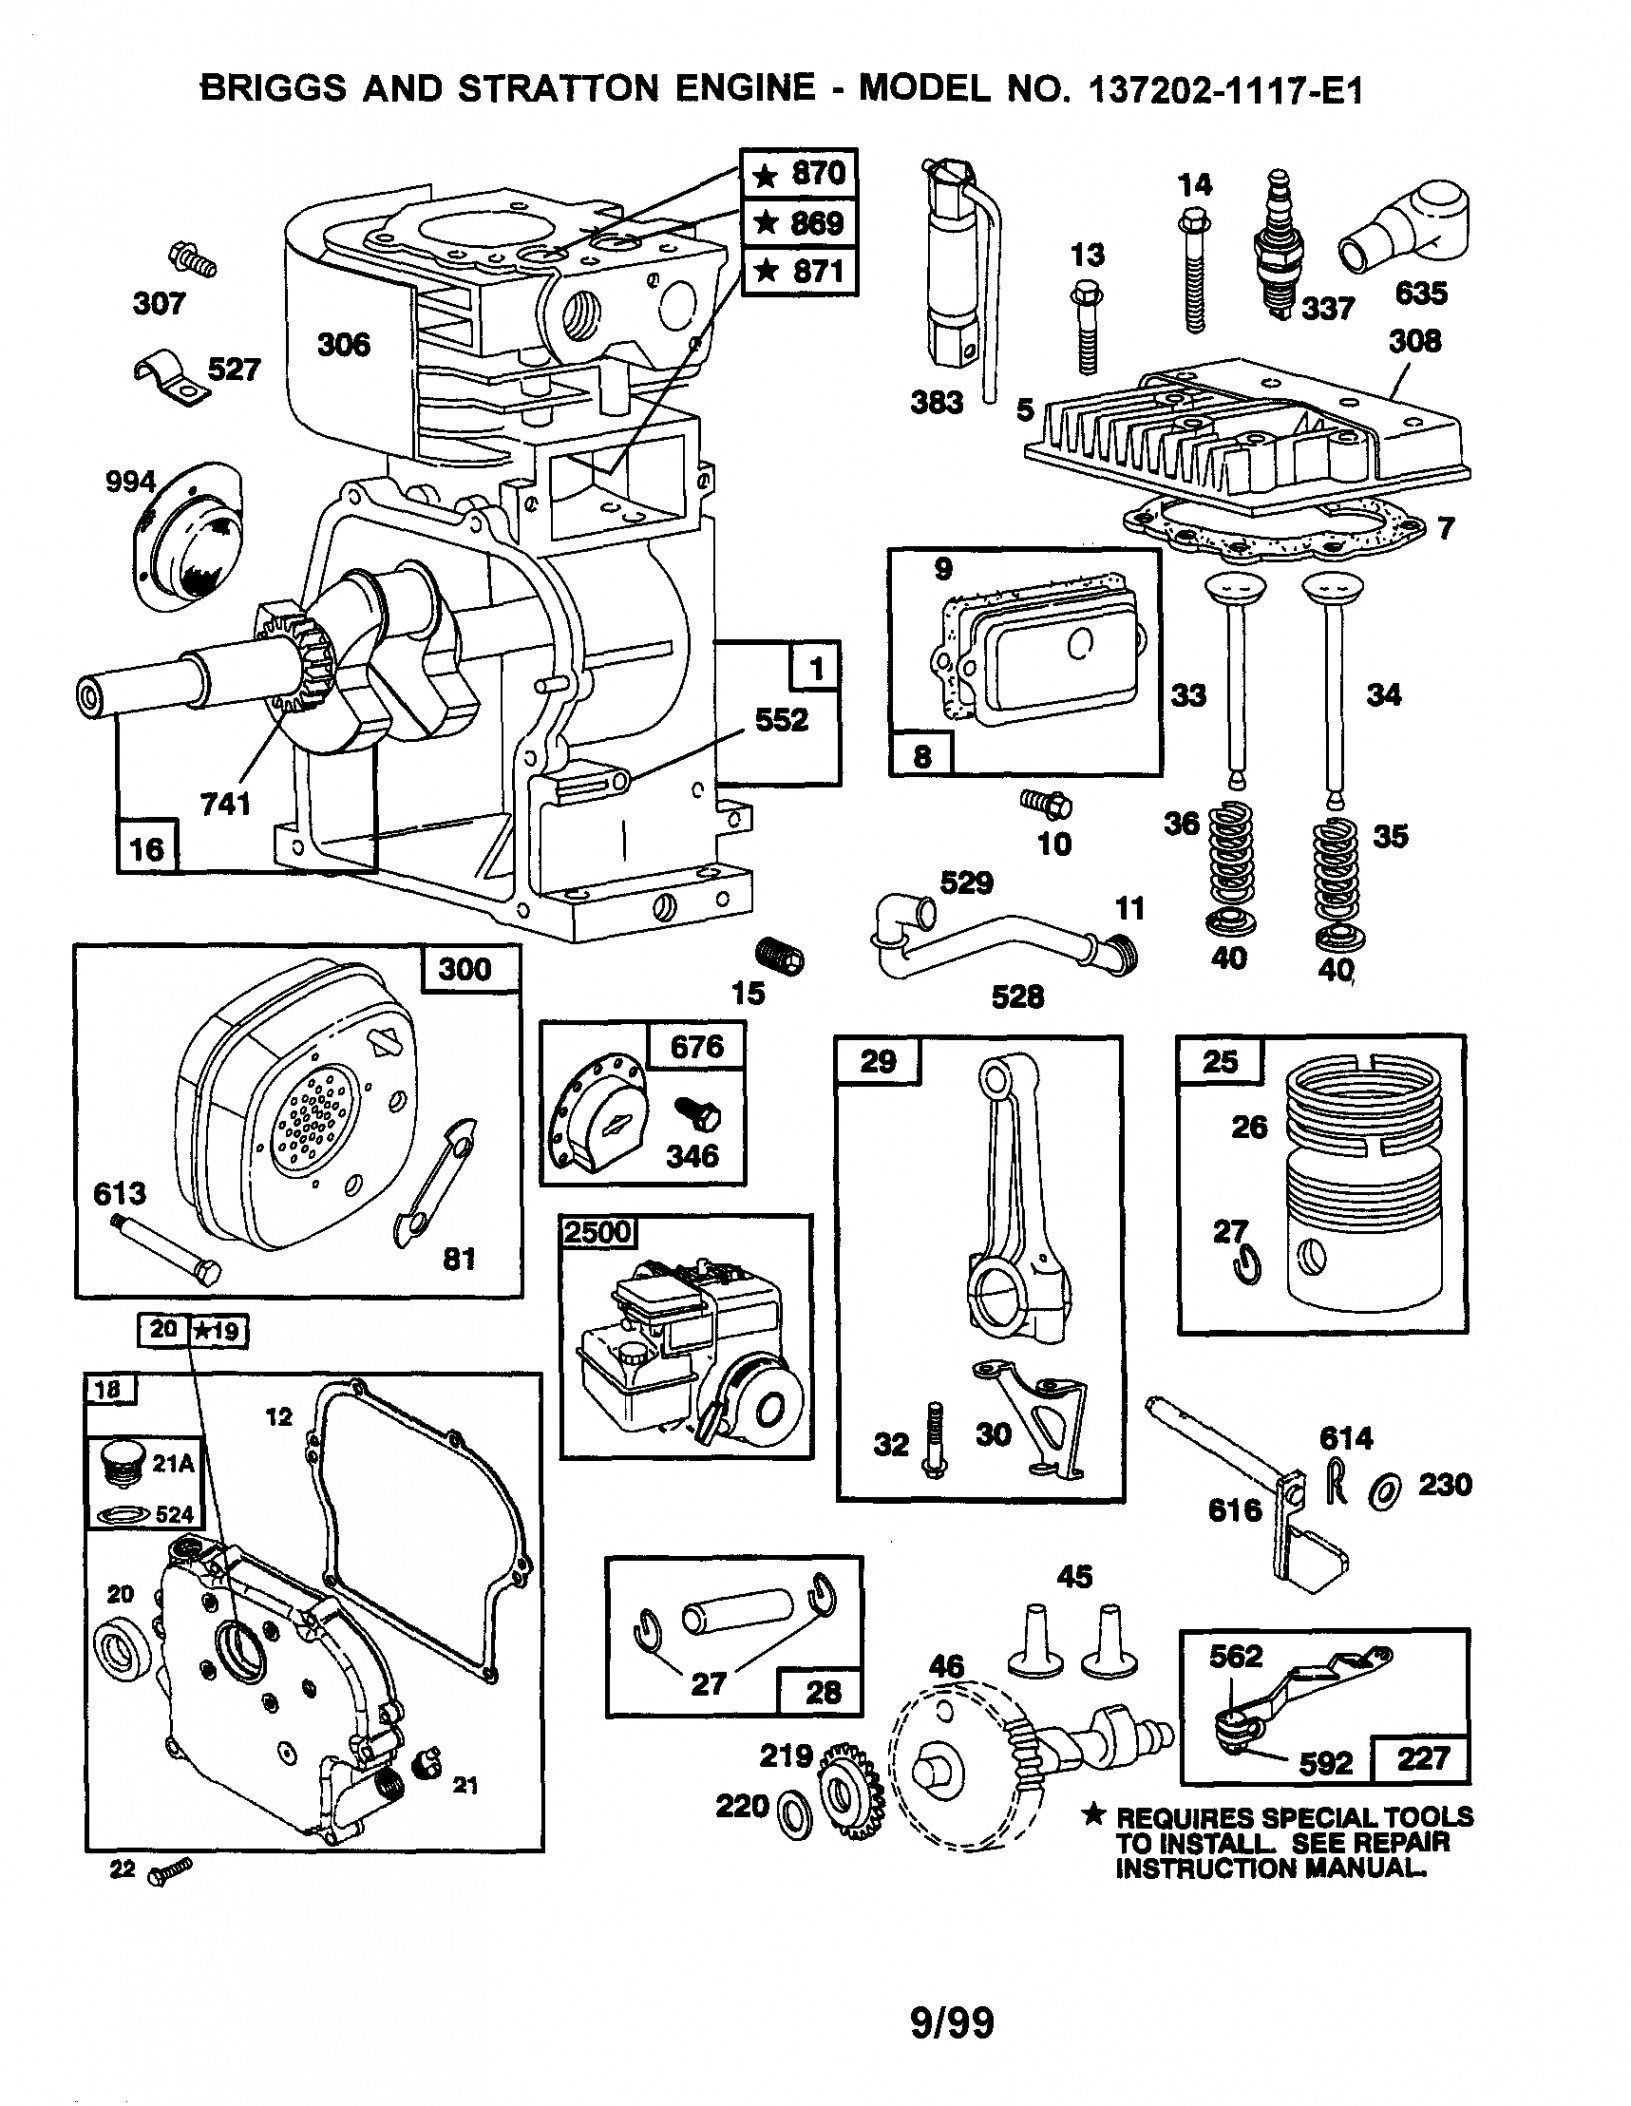 Briggs And Stratton Engine Troubleshooting Diagram – Wiring Diagram - Briggs And Stratton V-Twin Wiring Diagram